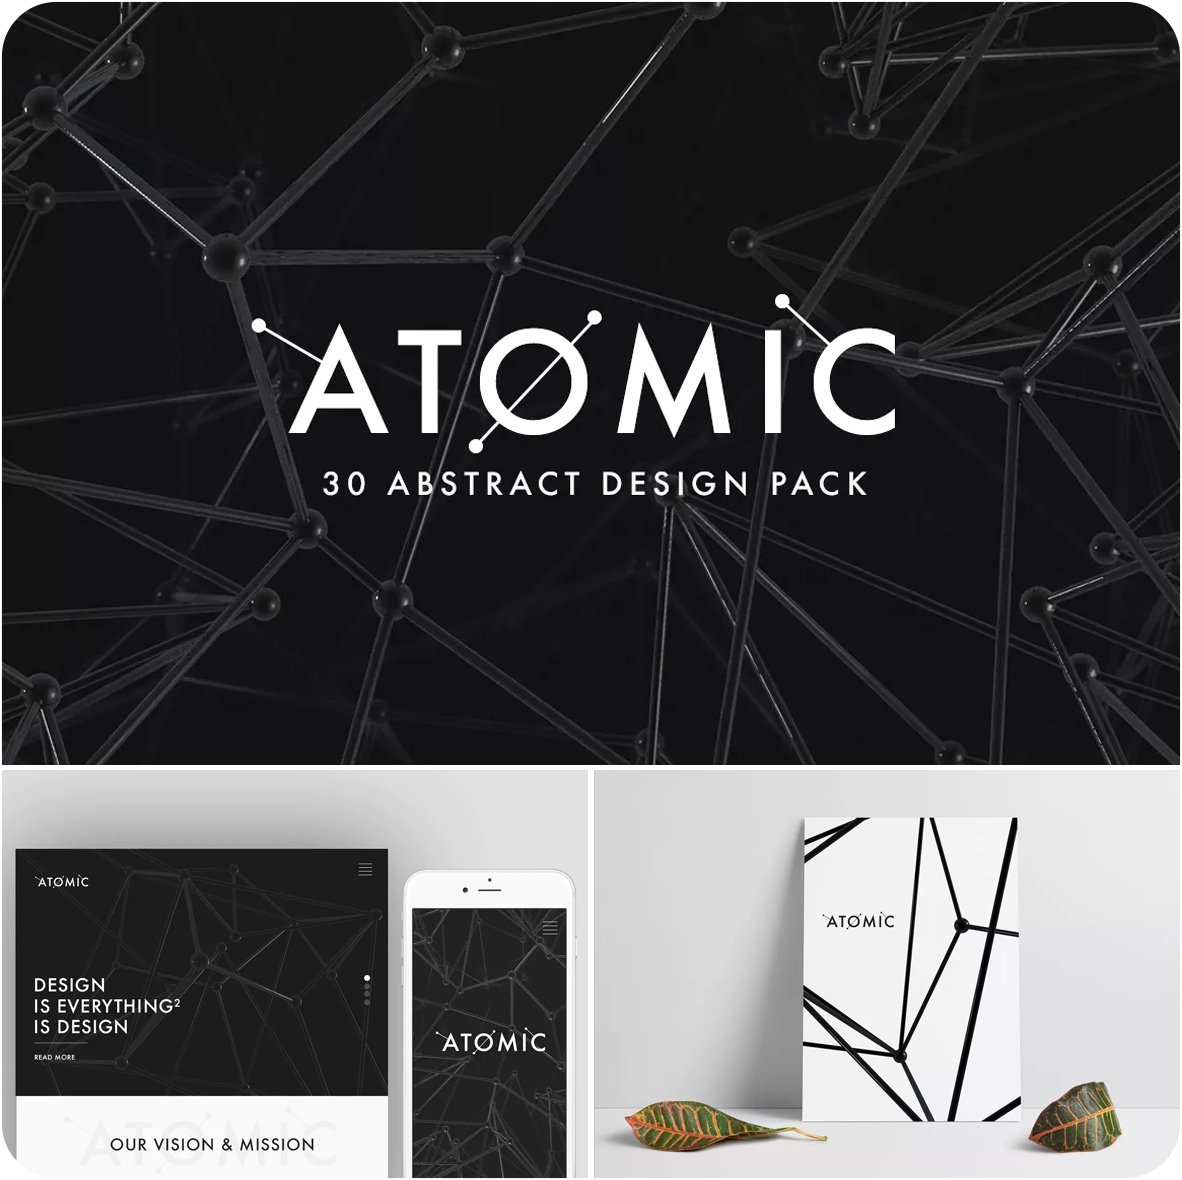 Atomic 30 Abstract Design Pack